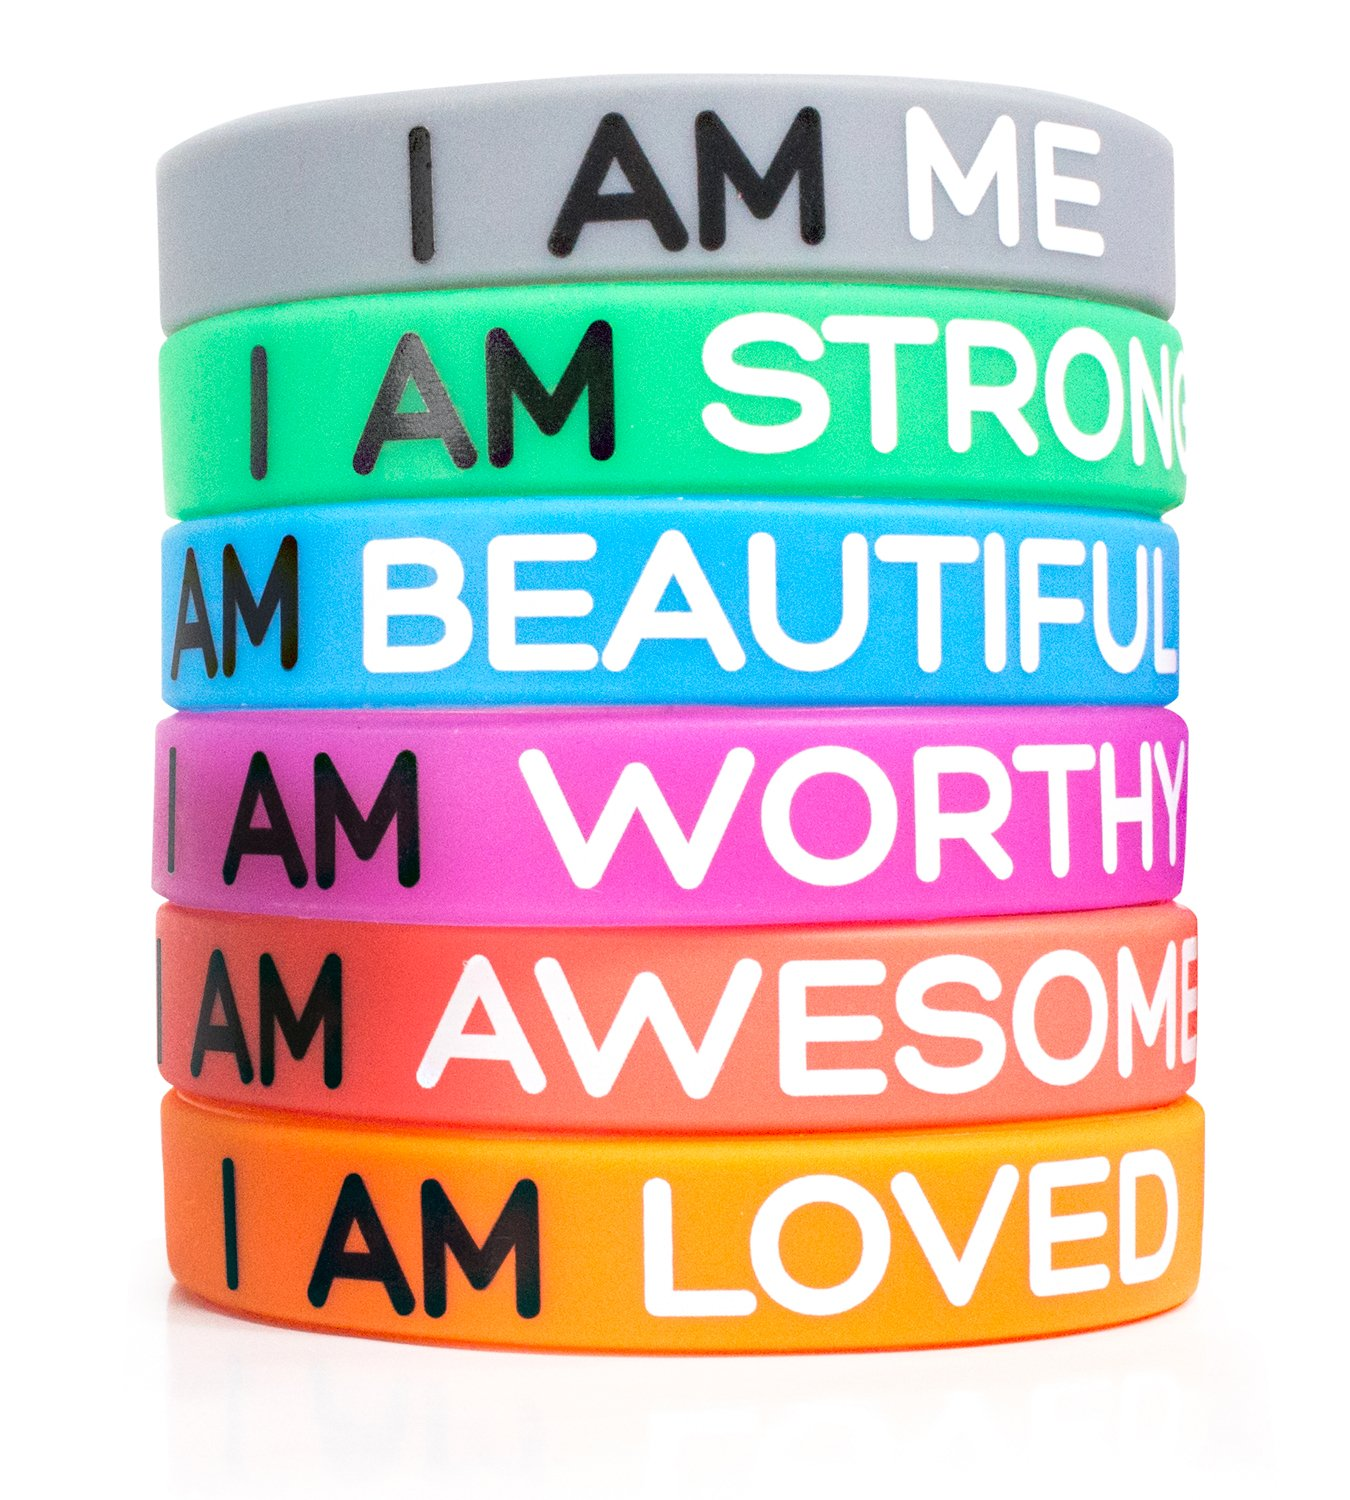 """Solza Inspirational Silicone Wristbands 6-Piece Set Rubber Band Bracelets, 6 Messages to Brighten Your Day   Adult Unisex Size, 8"""" x 0.5""""   Non-Toxic, Hypoallergenic Boxiki"""